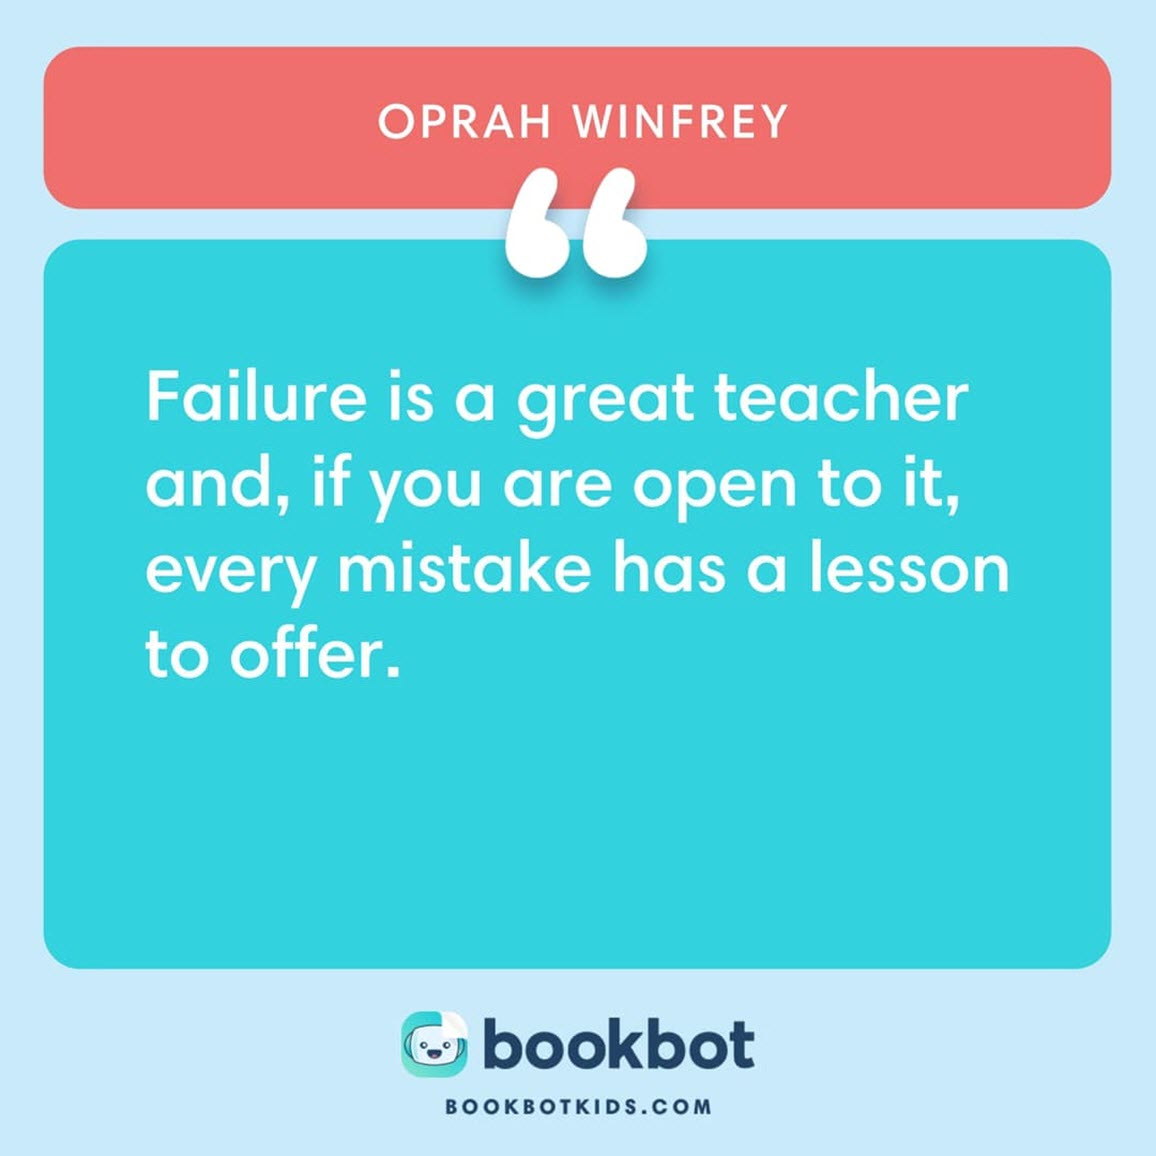 Failure is a great teacher and, if you are open to it, every mistake has a lesson to offer. – Oprah Winfrey